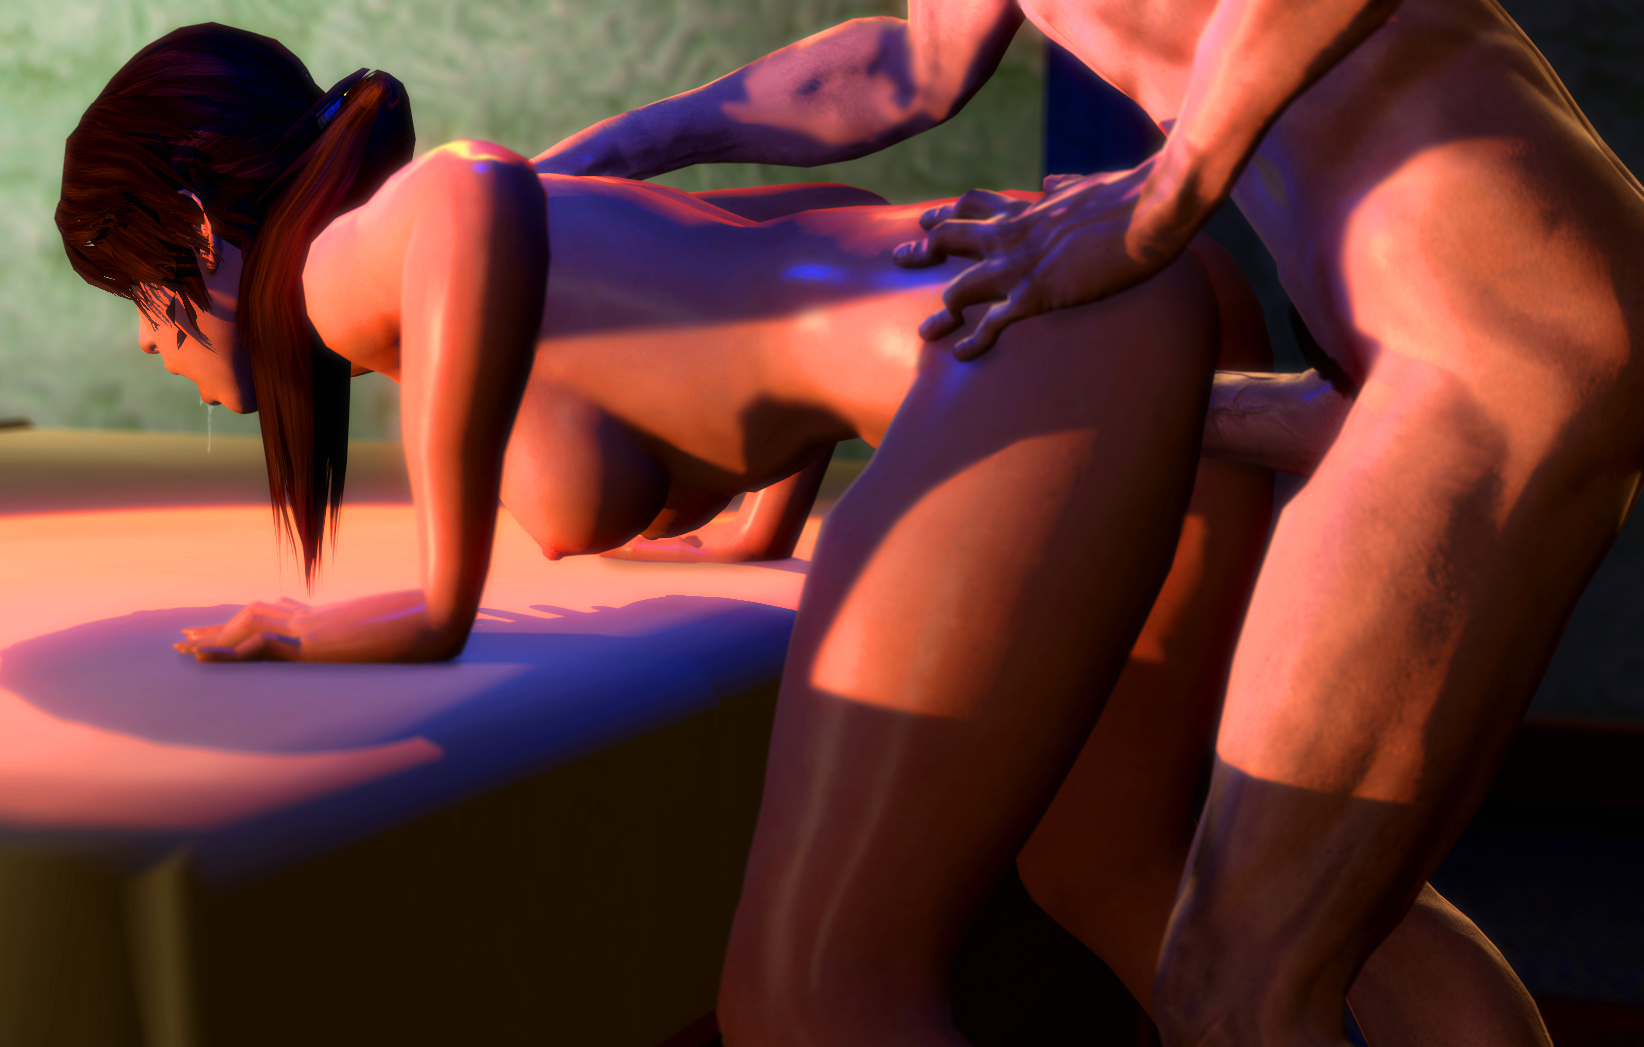 Lara croft uncensored pictures sex tube